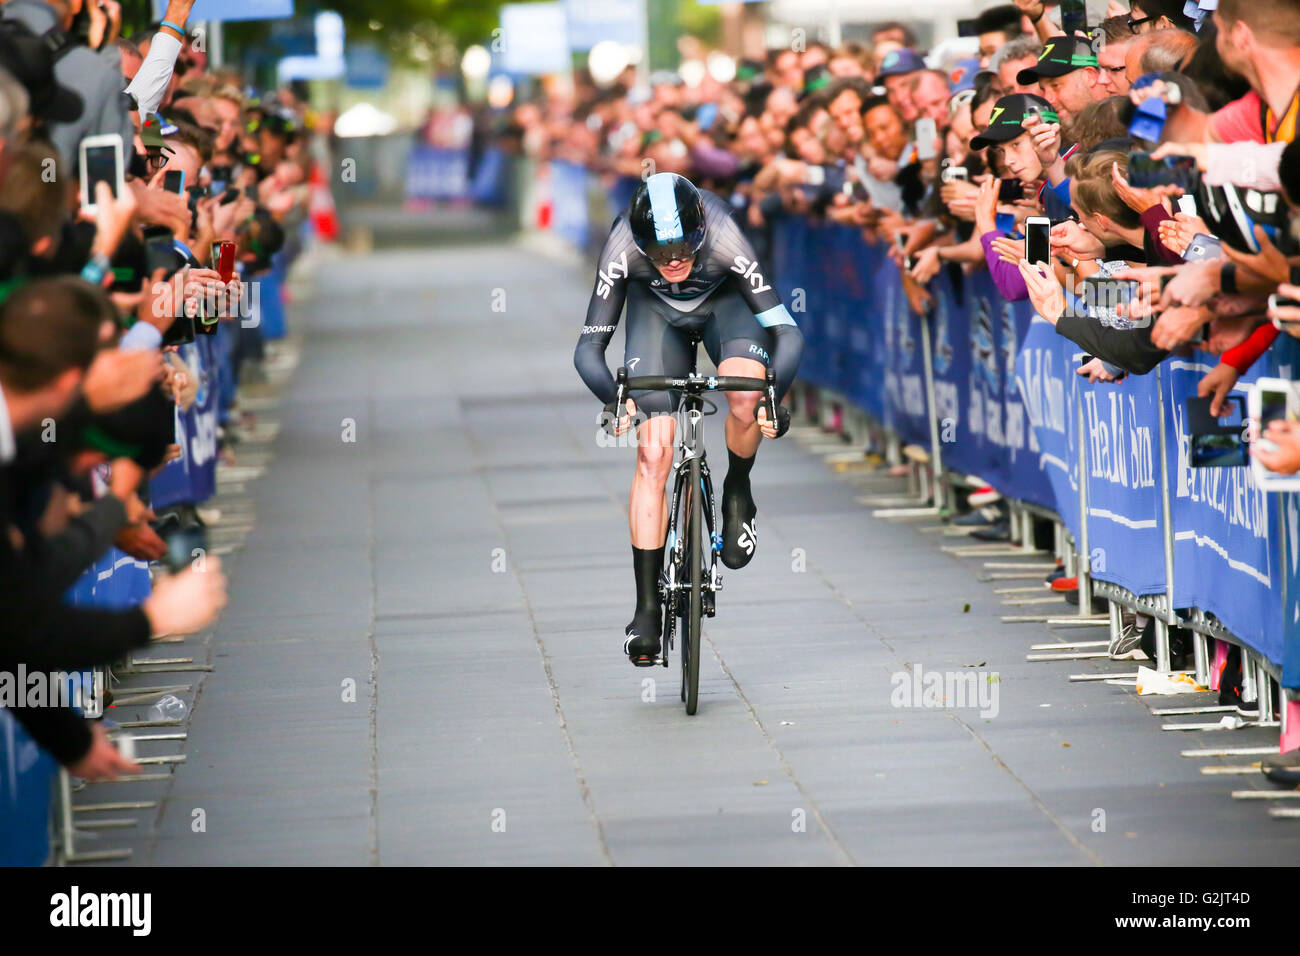 MELBOURNE, AUSTRALIA - FEBRUARY 3: Chris Froome sprints to the finish line on the Prologue stage on the first day - Stock Image